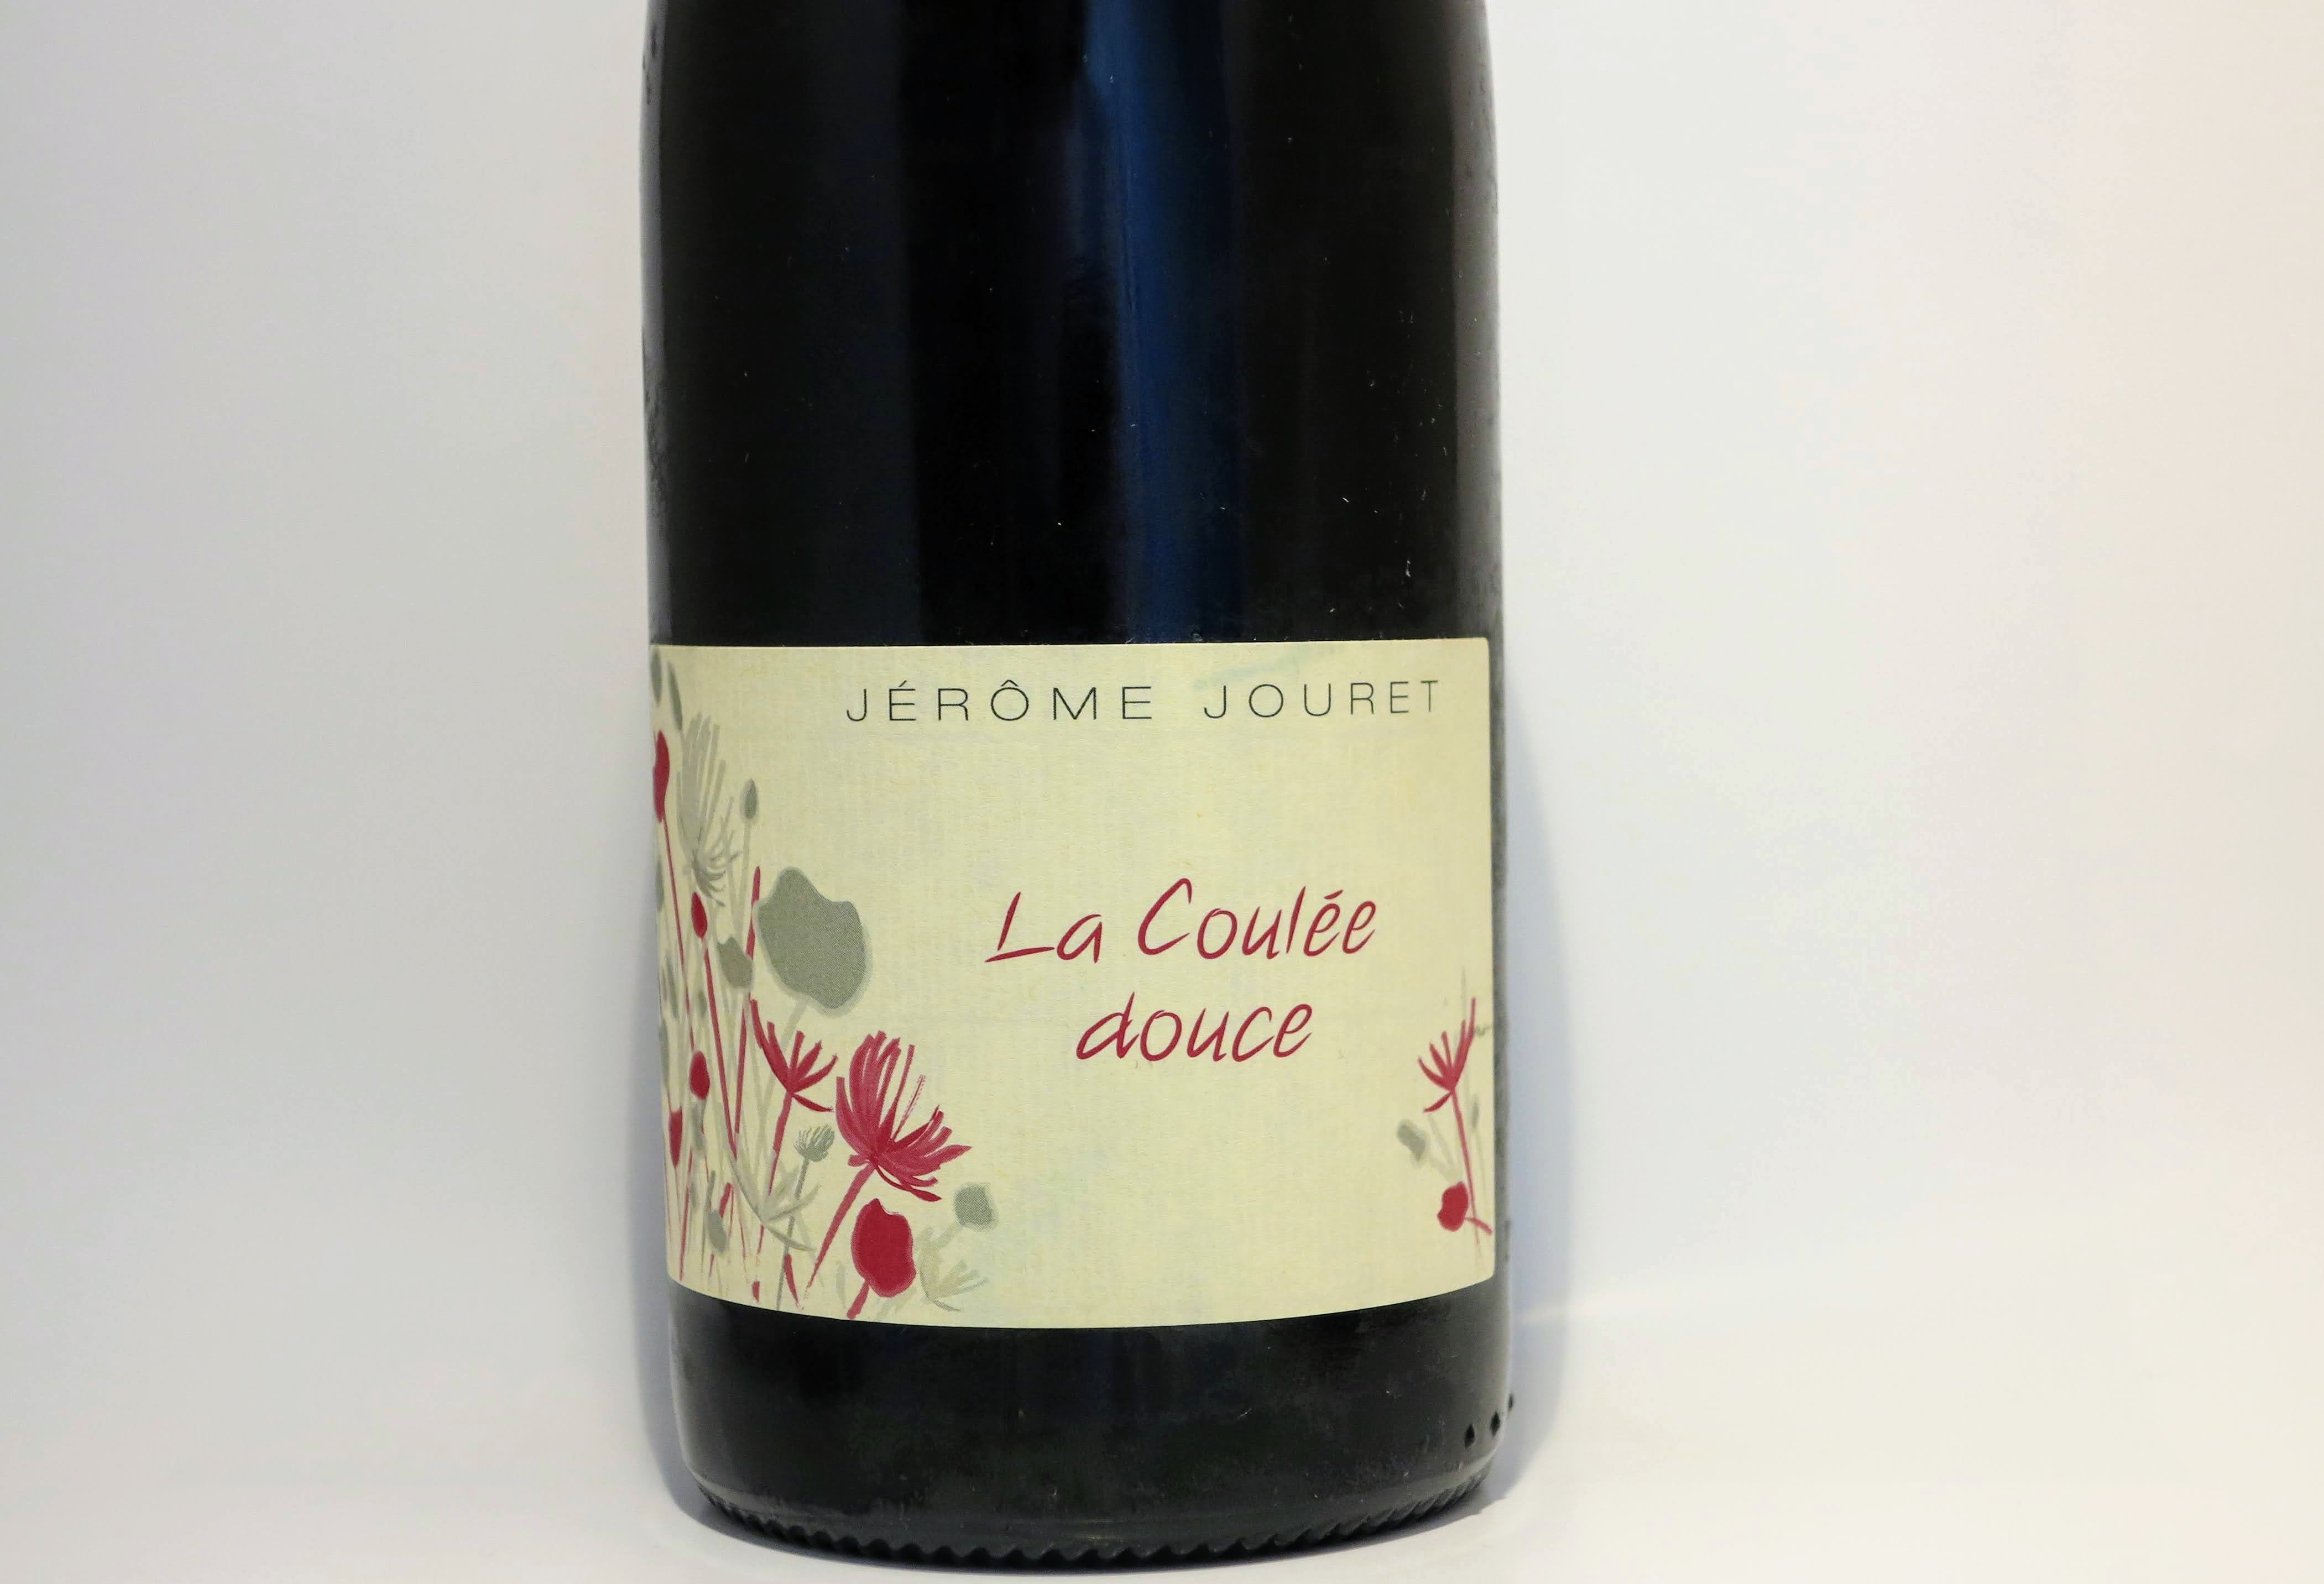 La coulée douce 2018 - Vino natural